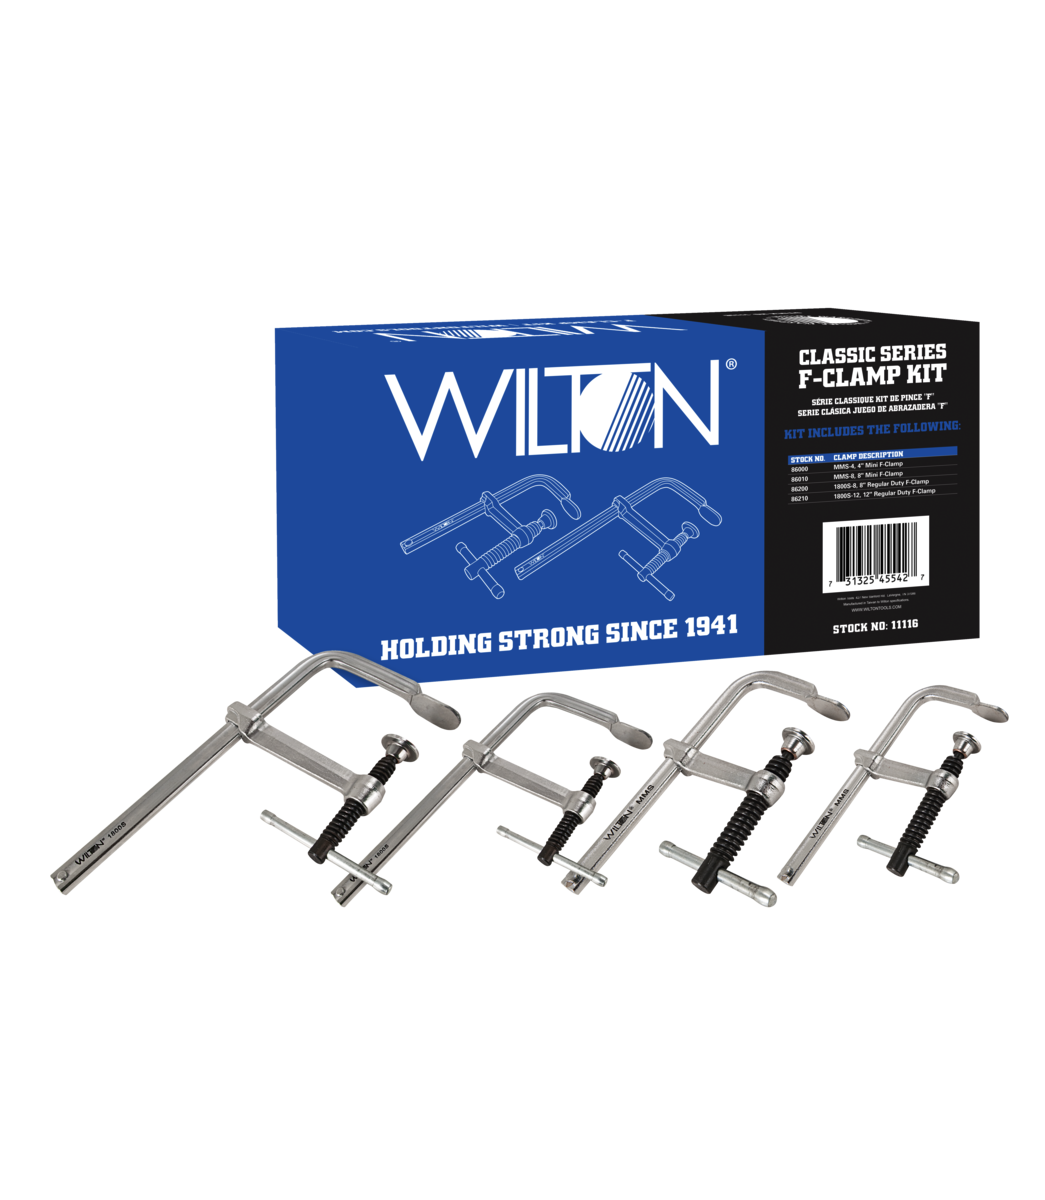 Classic Series F-Clamp Kit